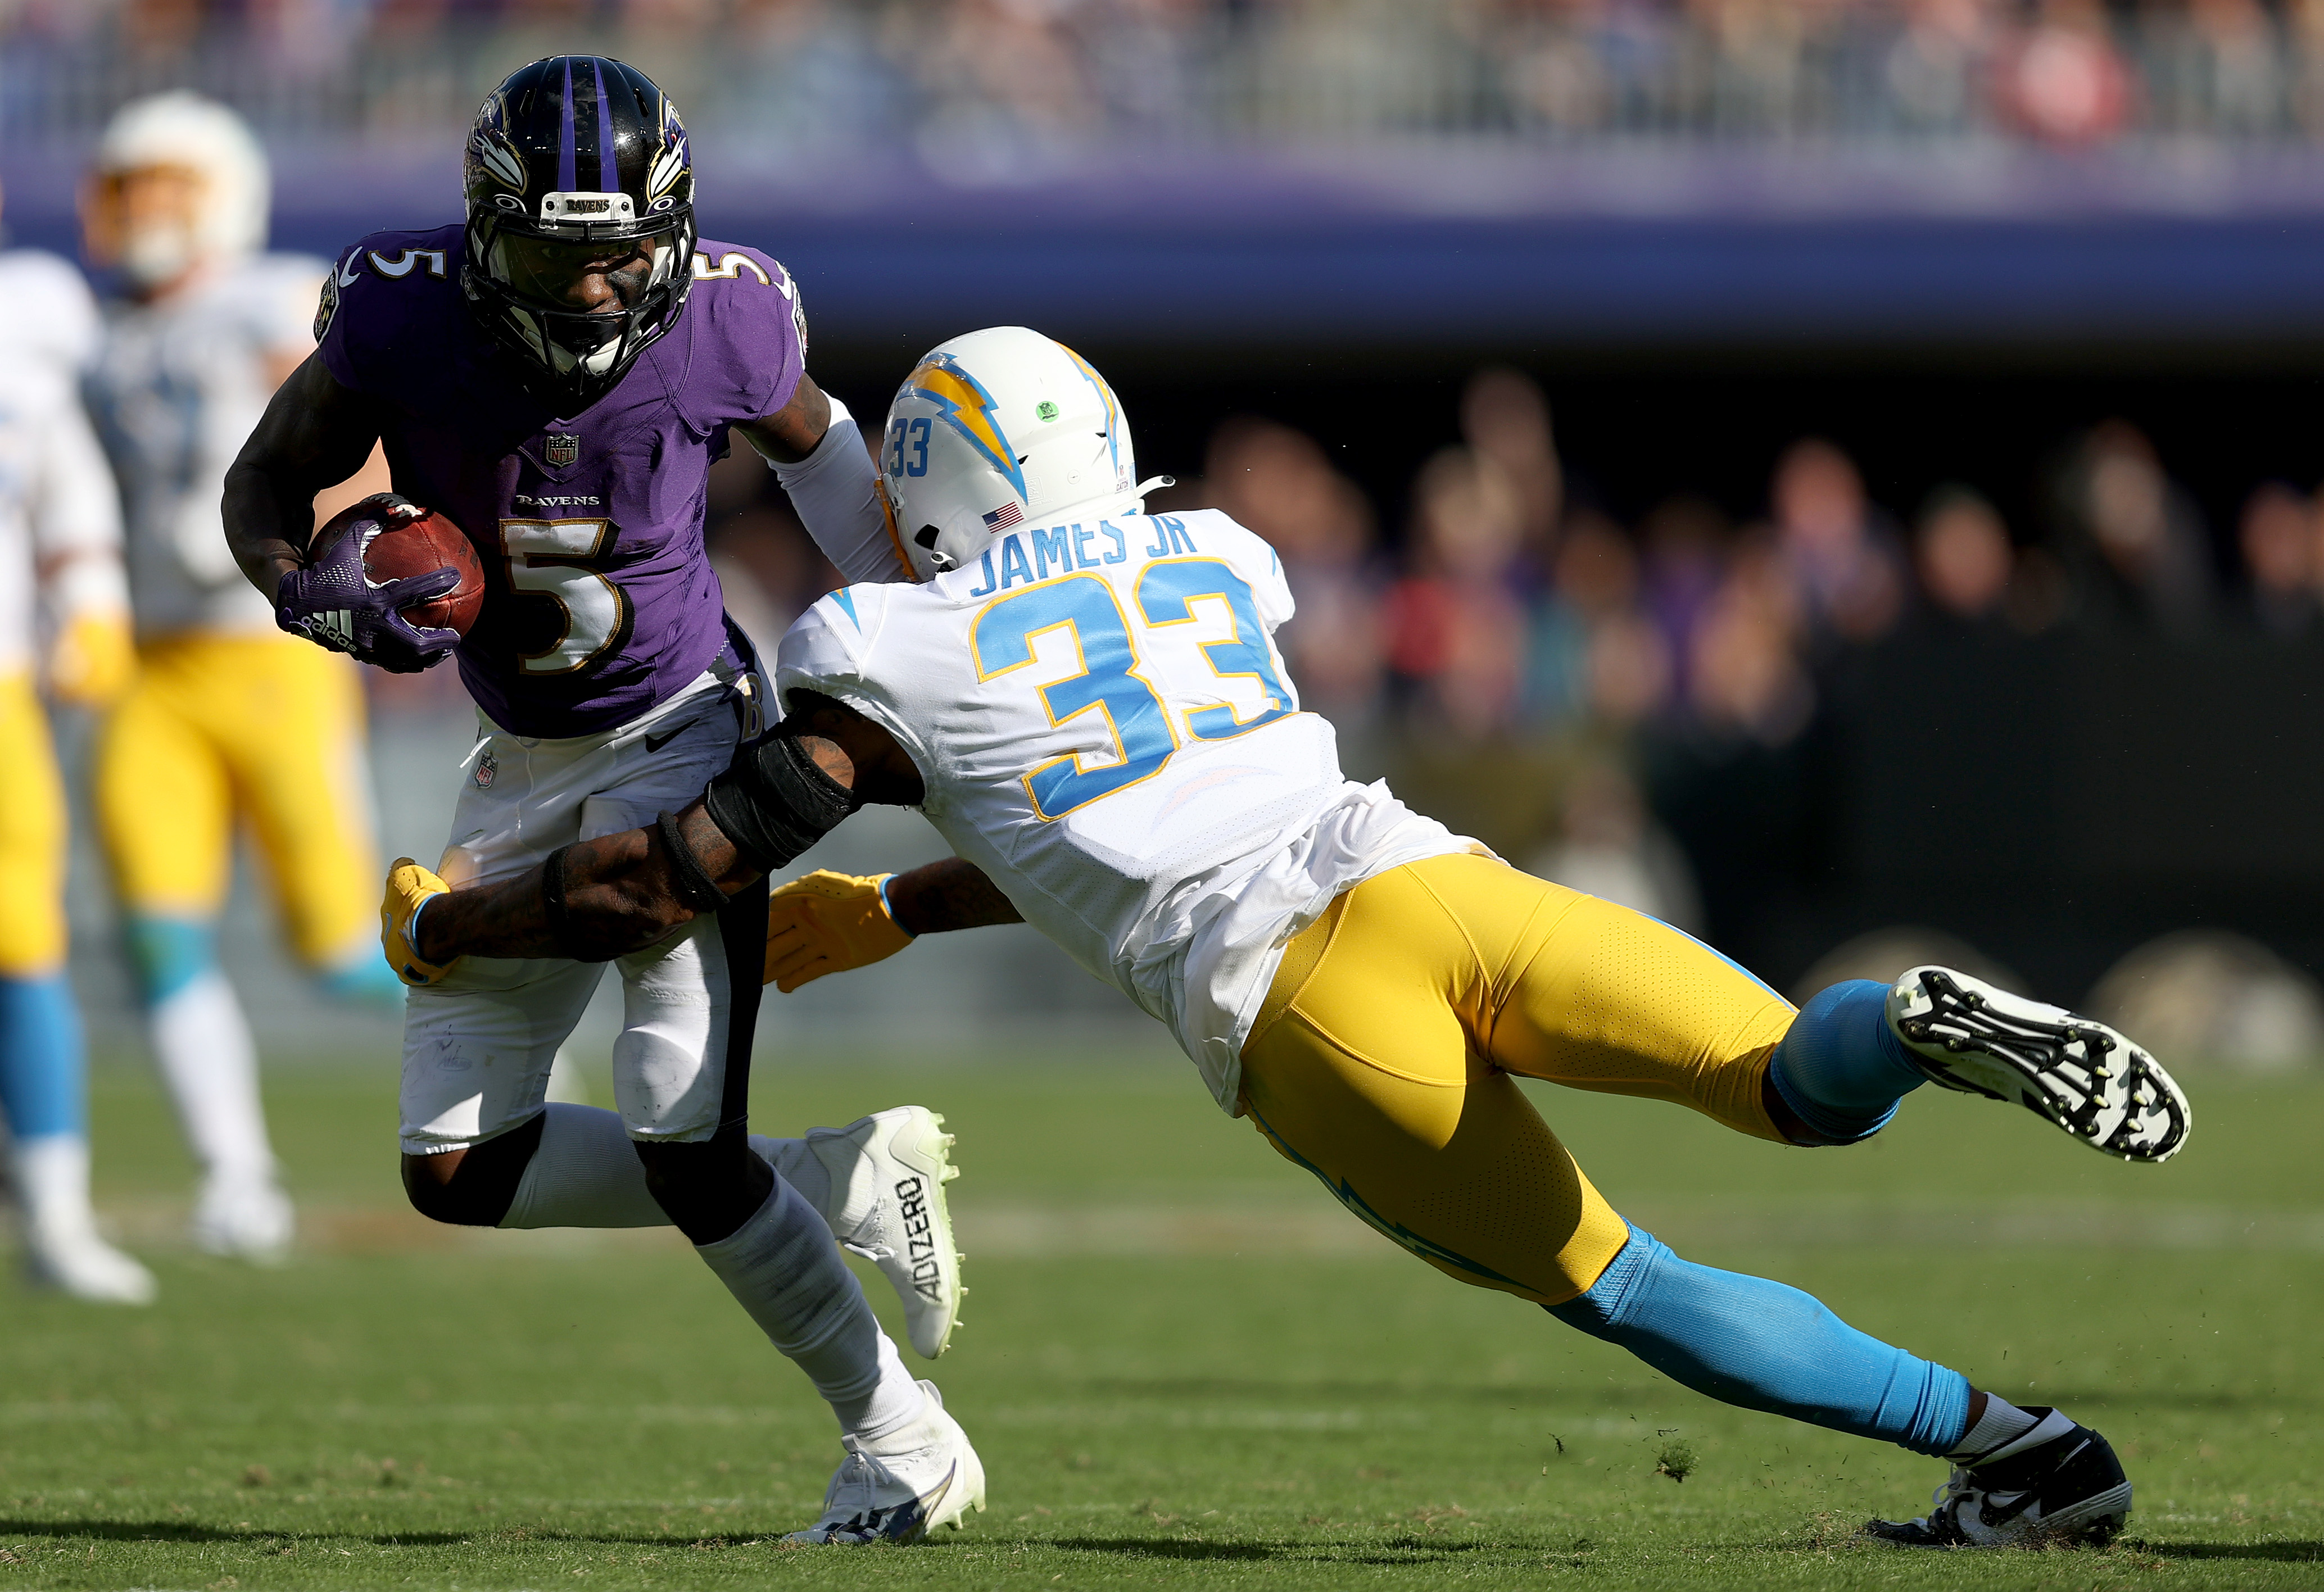 Derwin James Jr. #33 of the Los Angeles Chargers tackles Marquise Brown #5 of the Baltimore Ravens during the third quarter at M&T Bank Stadium on October 17, 2021 in Baltimore, Maryland.